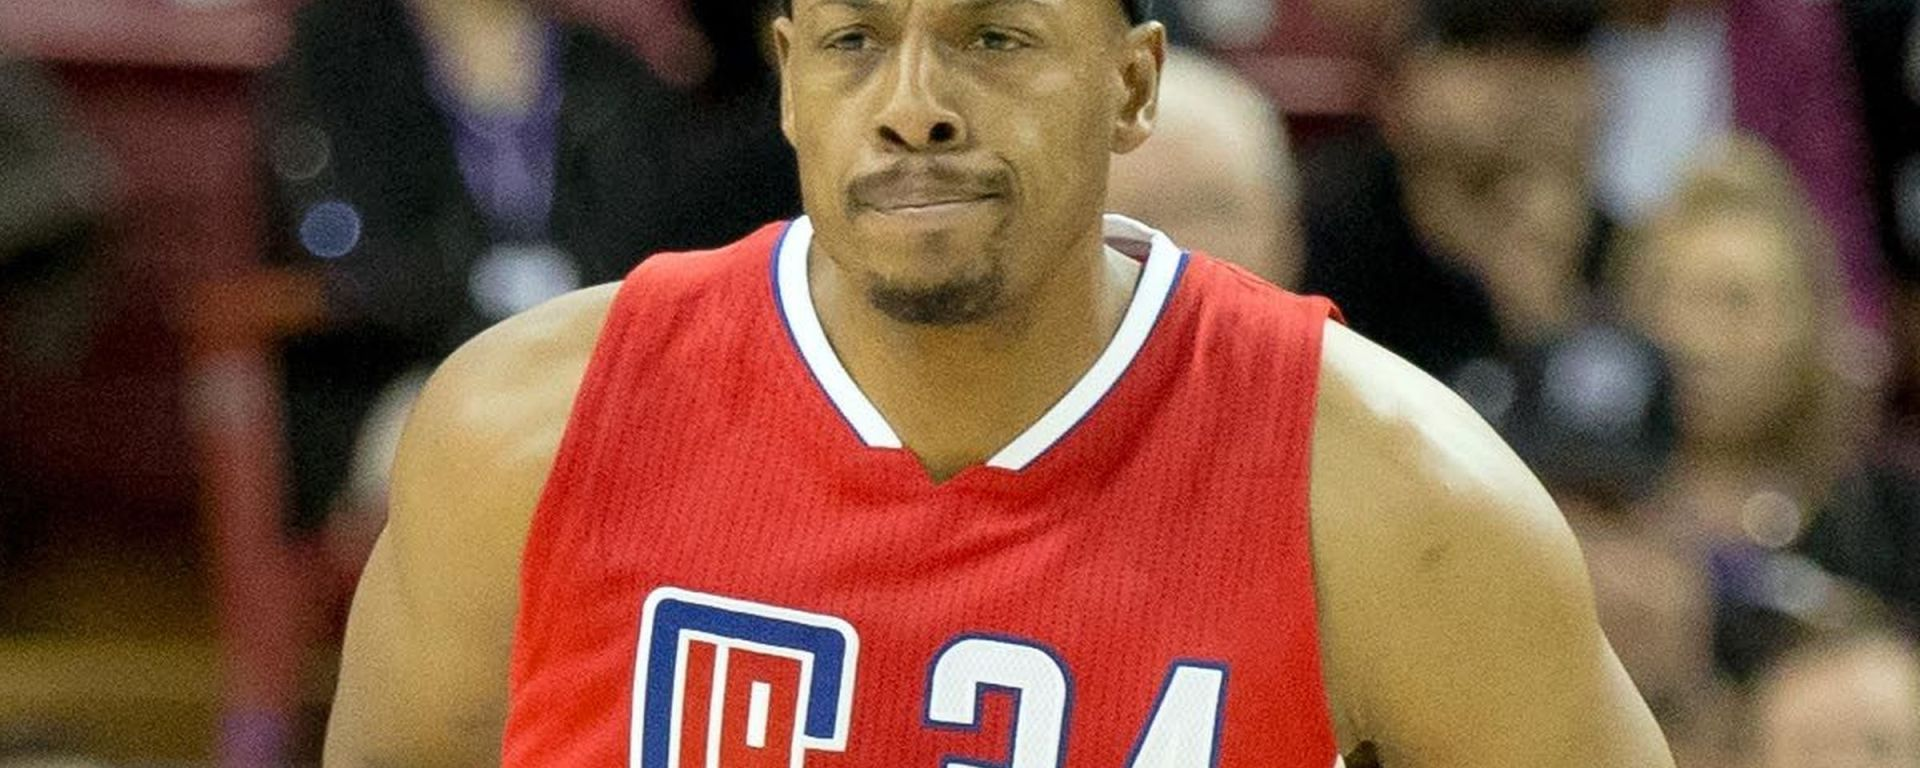 Washington Wizards NBA Blog - Los Angeles Clippers forward Paul Pierce returns to Washington